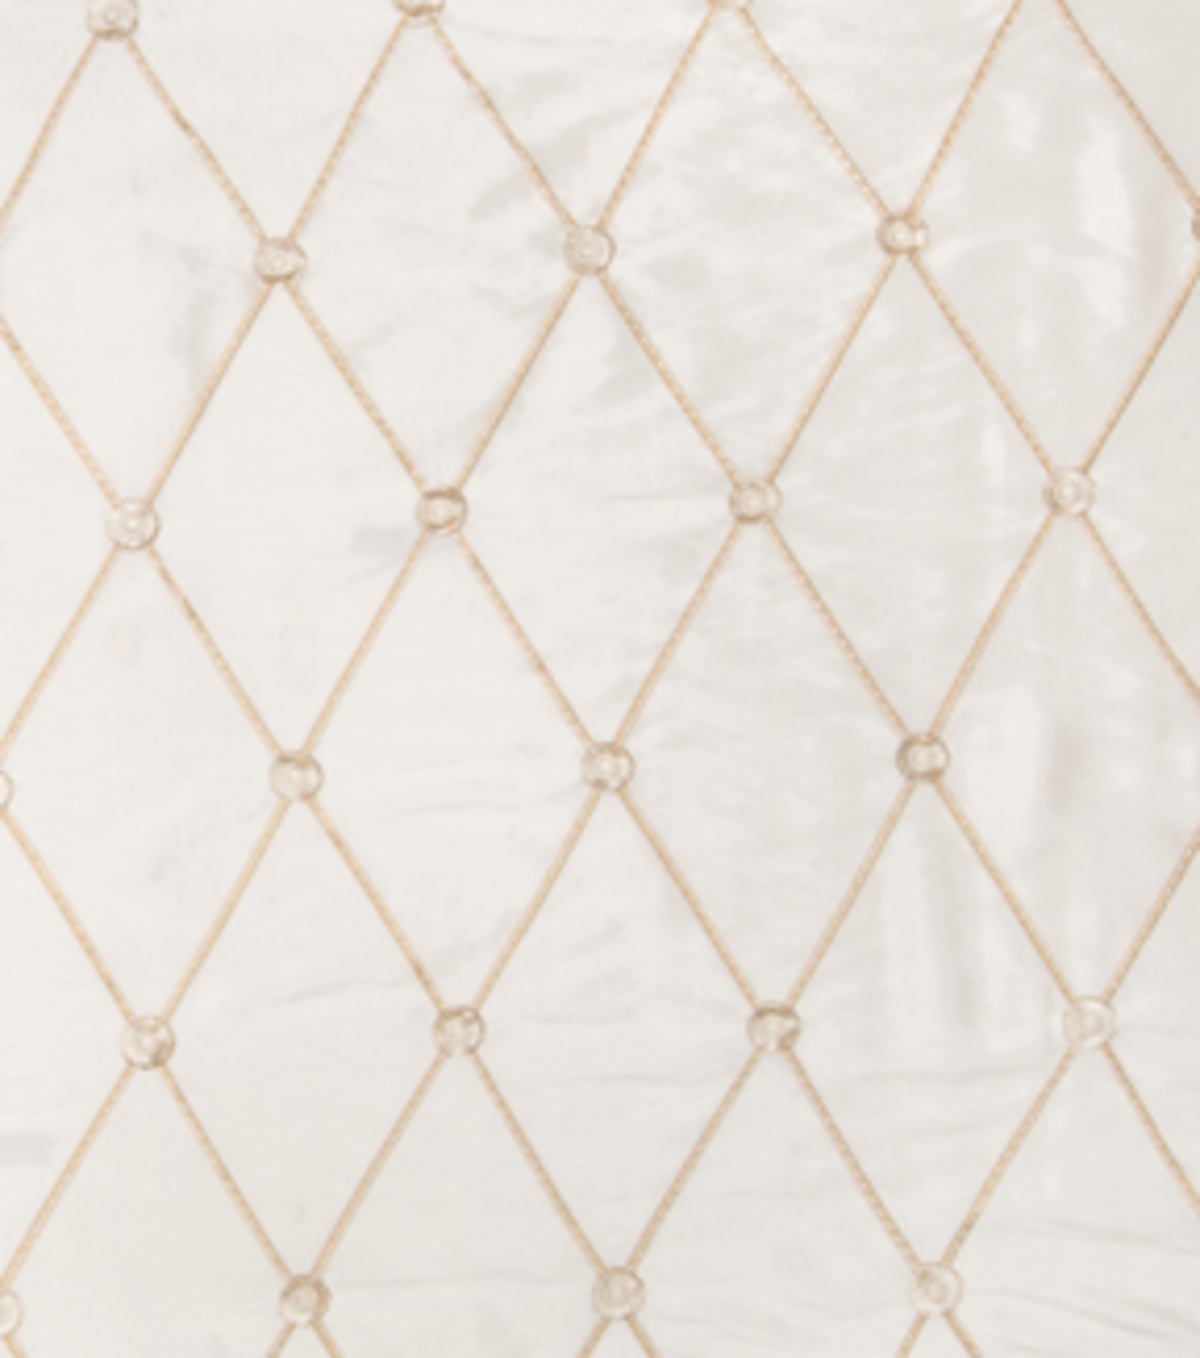 Home Decor 8\u0022x8\u0022 Fabric Swatch-Print Fabric Eaton Square Beach Road Cream